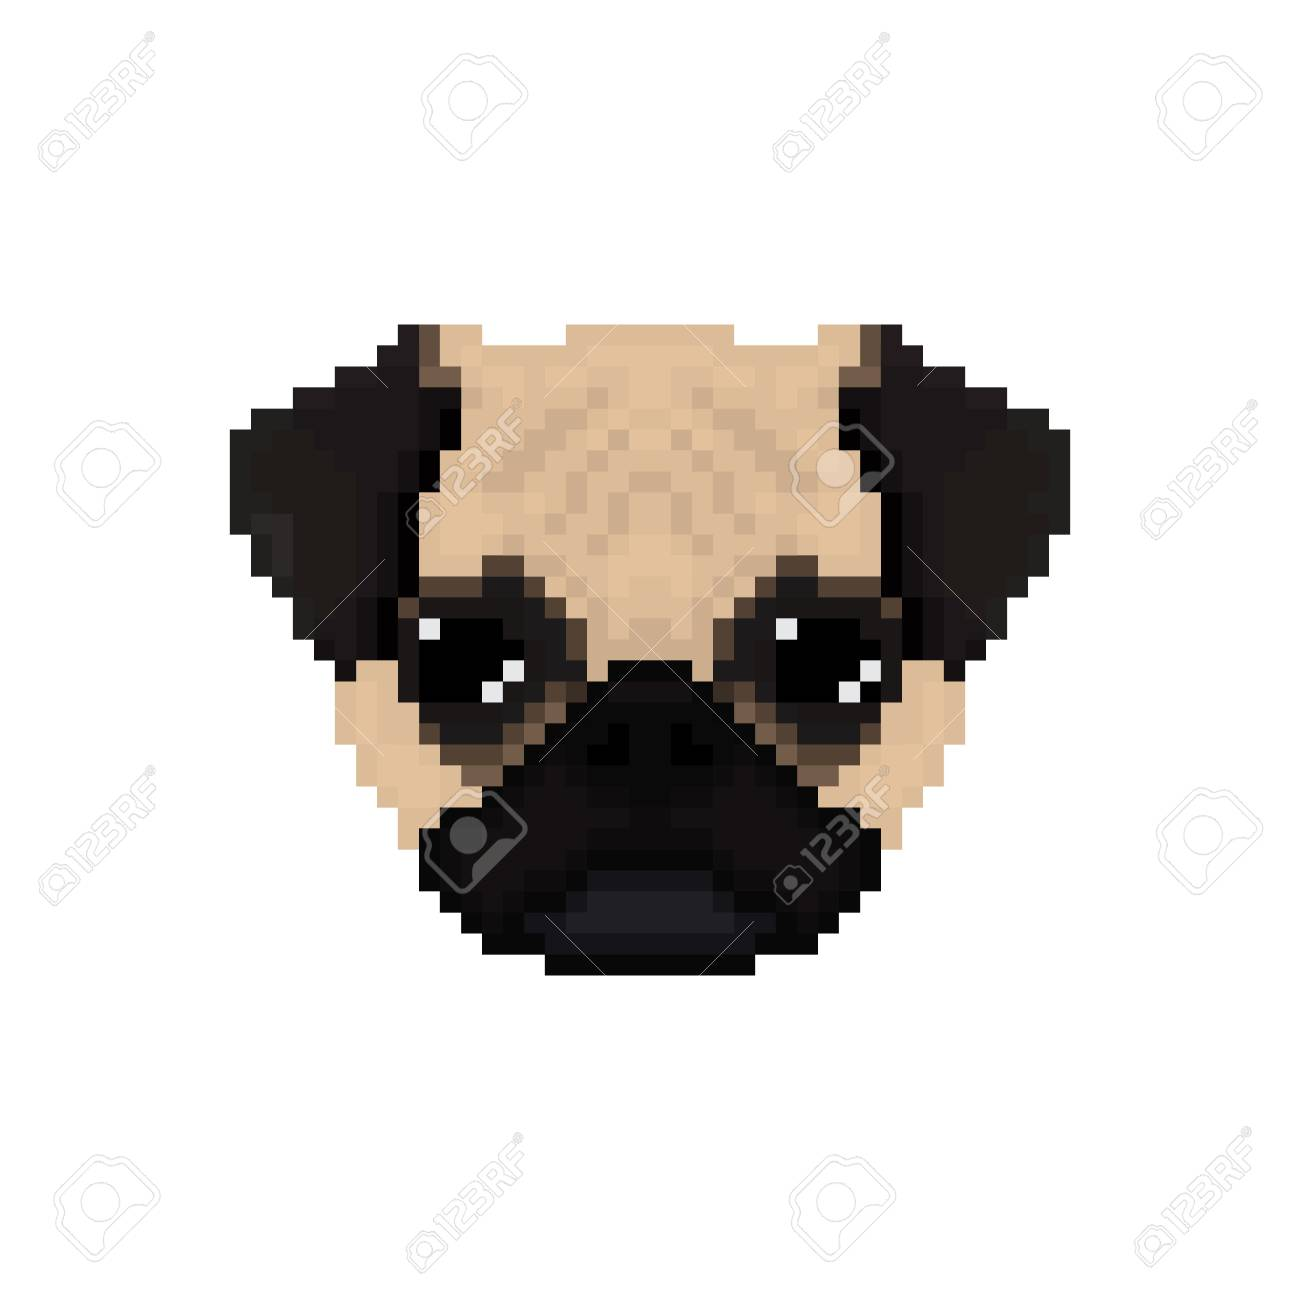 Mops Dog Head In Pixel Art Style Vector Illustration